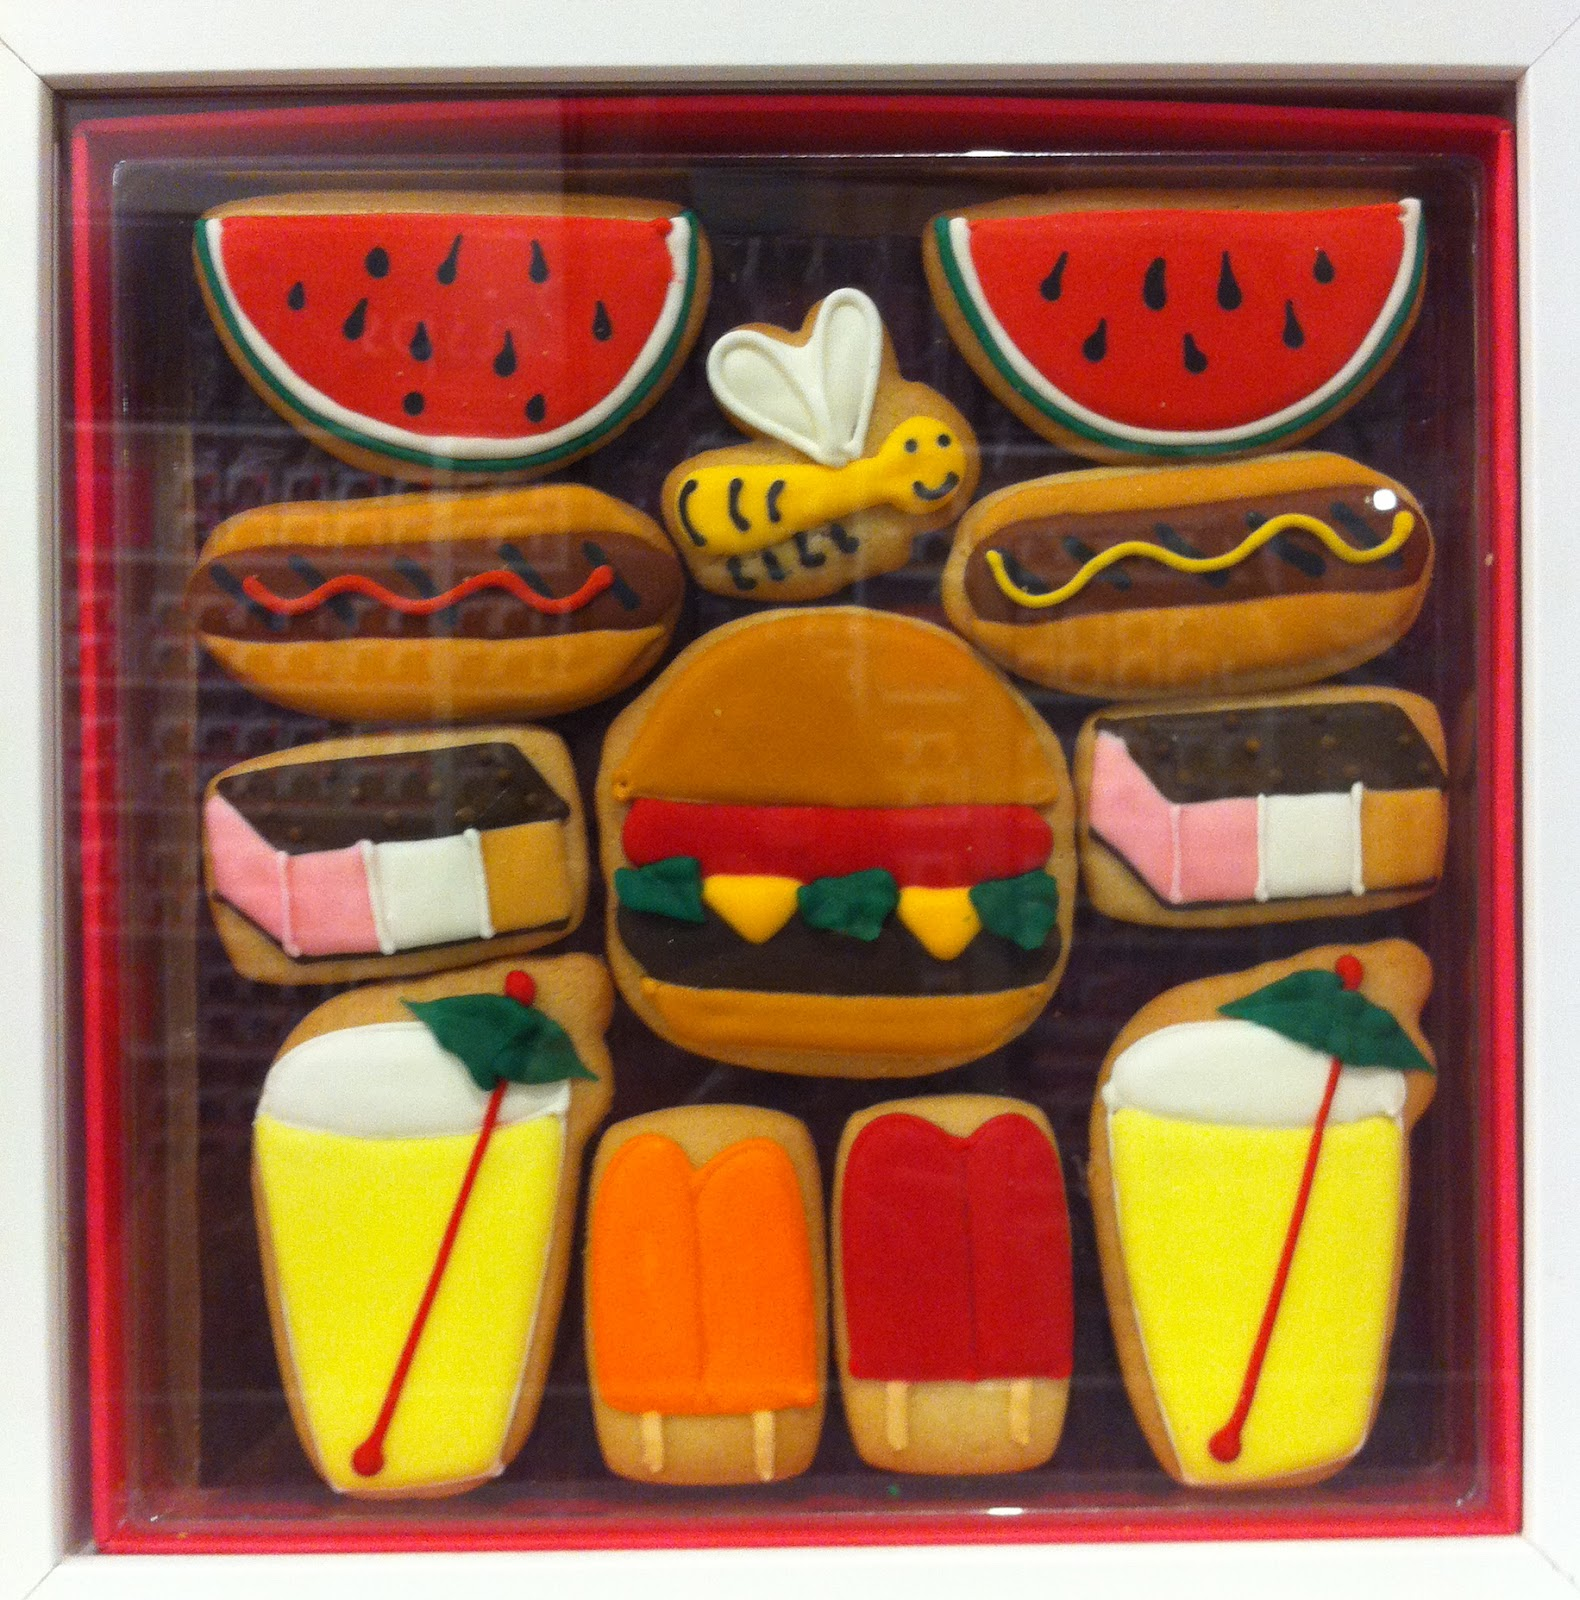 obsessive sweets eleni s new york imaginative cookies the other day i was walking through chelsea market and happened to glance inside eleni s bakery and witnessed the most astonishing and whimsical array of